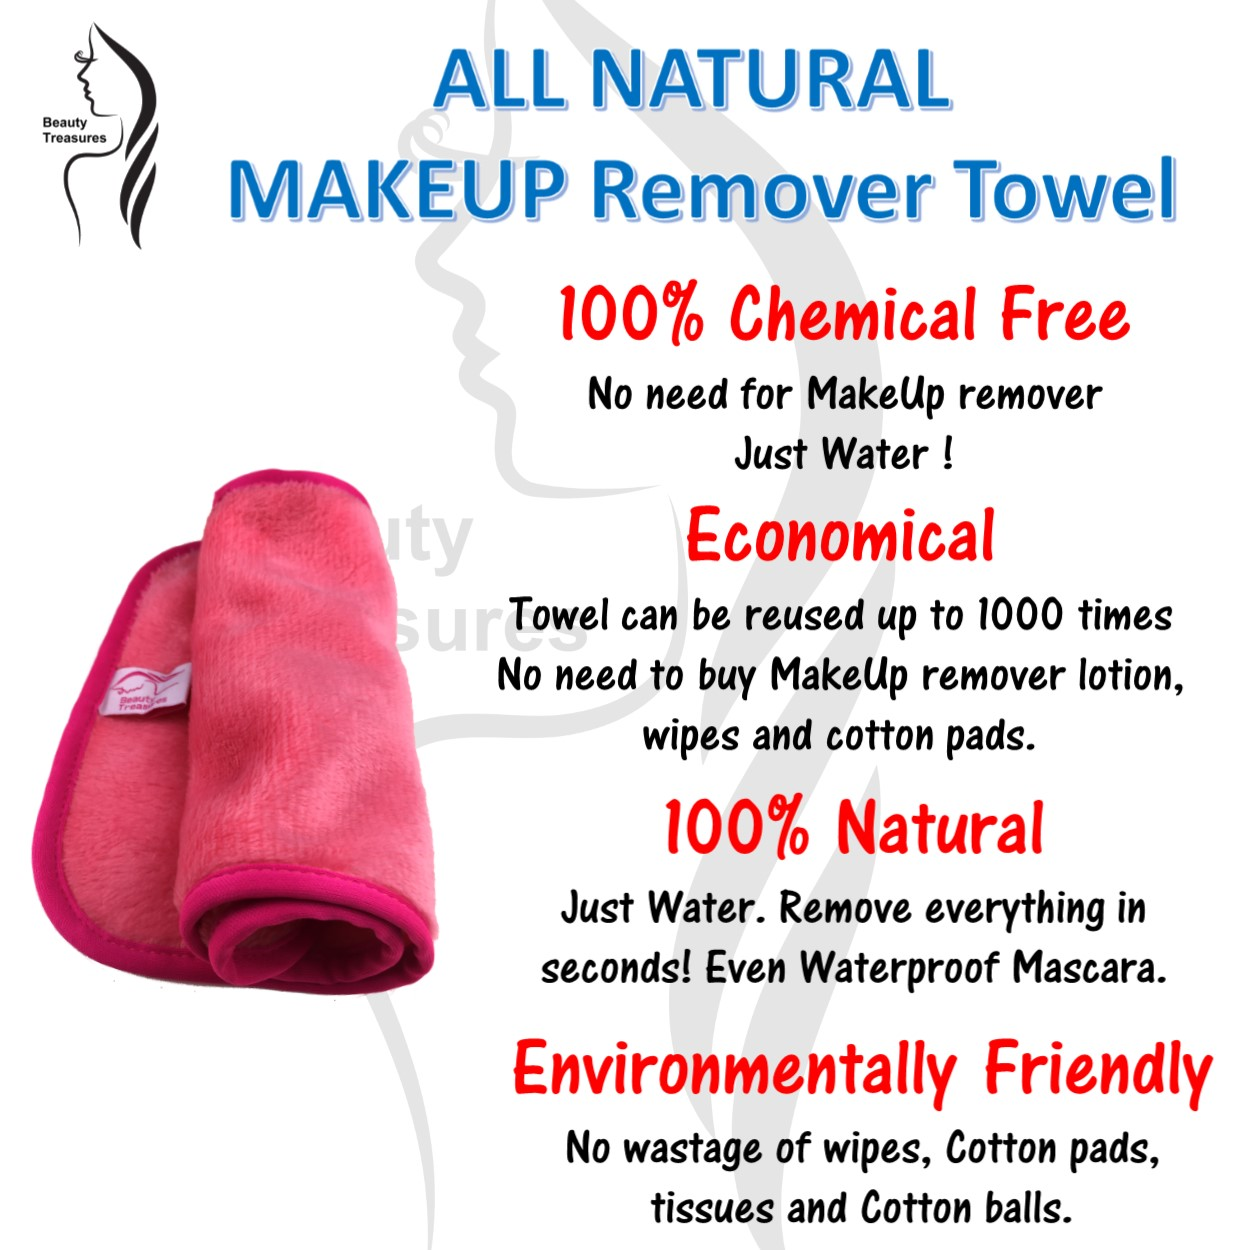 Where To Buy Travel Towel In Singapore: Buy Premium MakeUp Remover Towel Remove Your Makeup 100